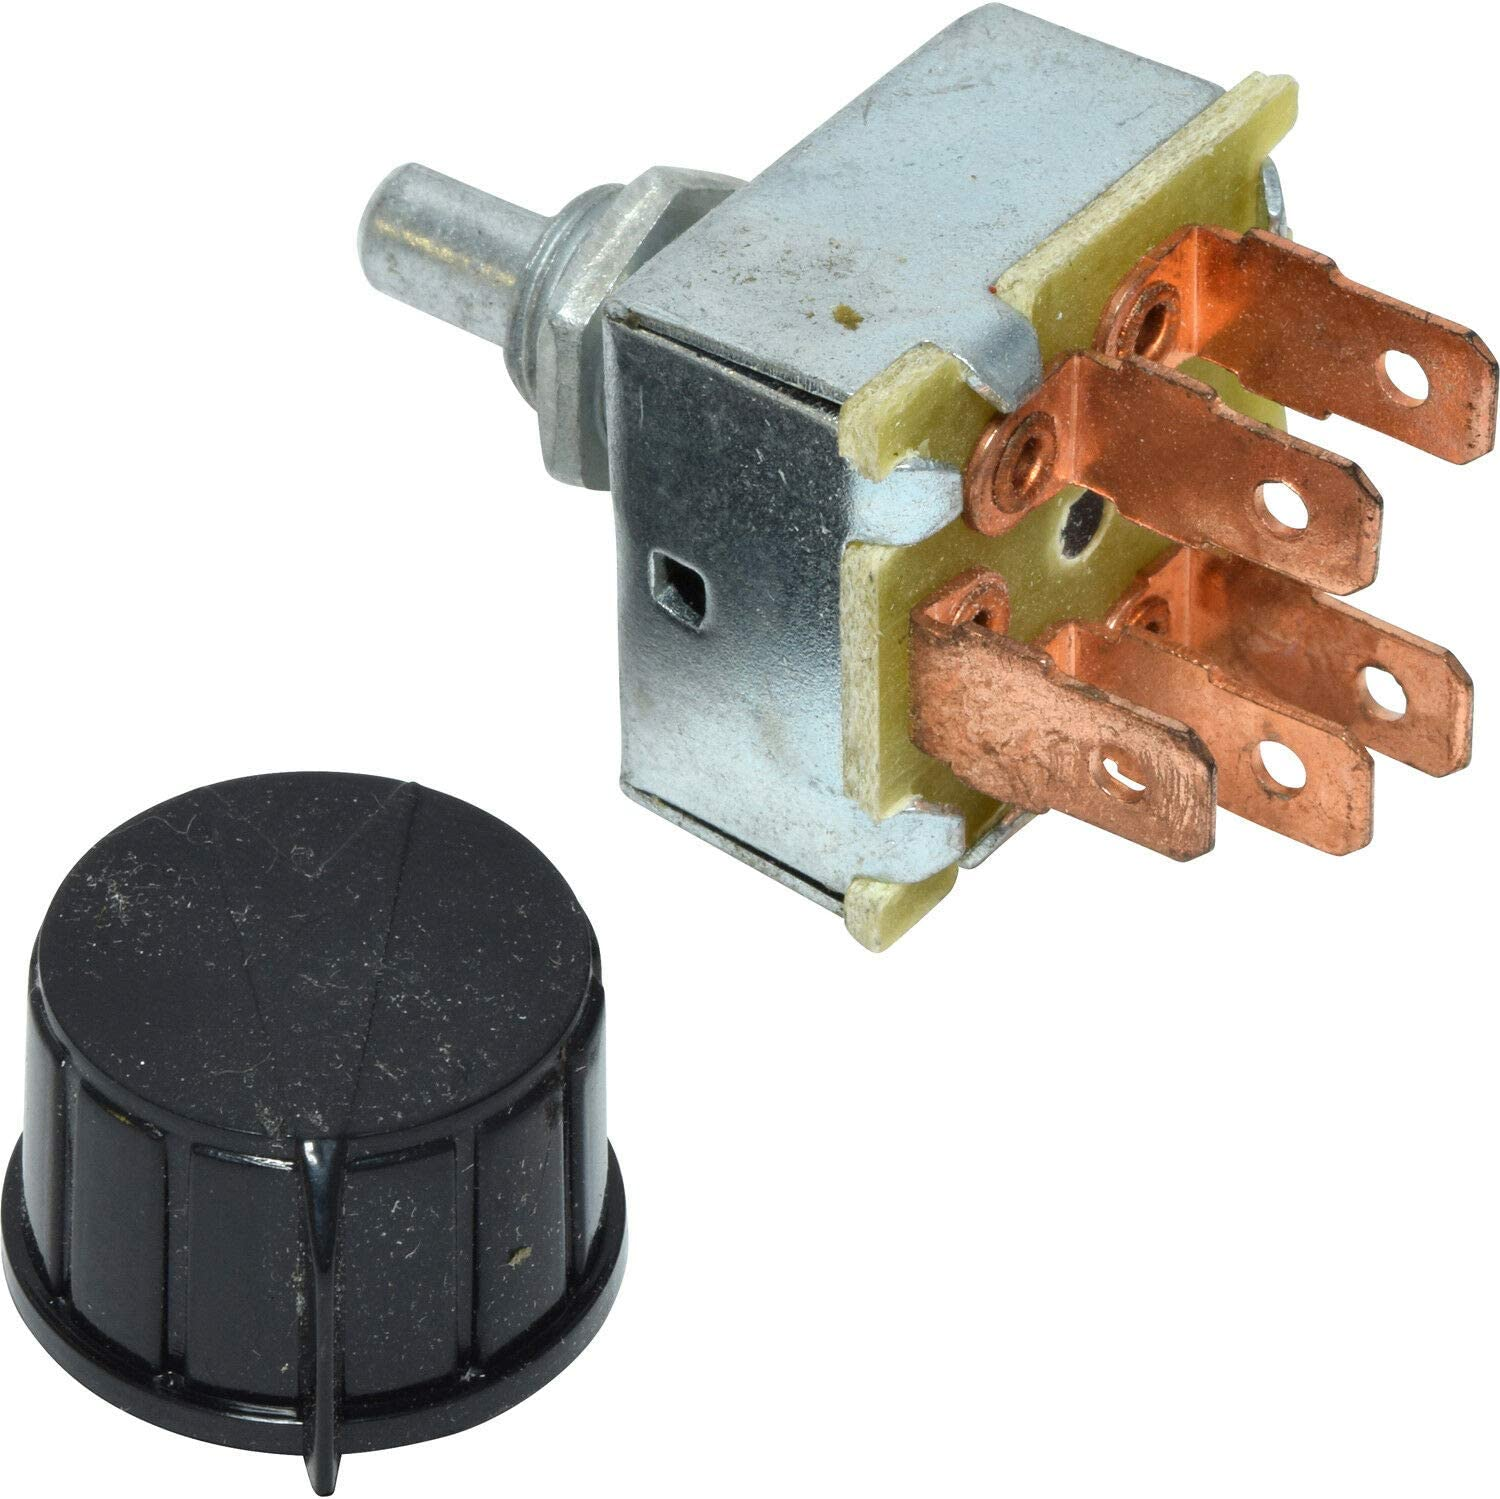 Santech Pigtail Universal Rotary Blower Switch 5 Terminals